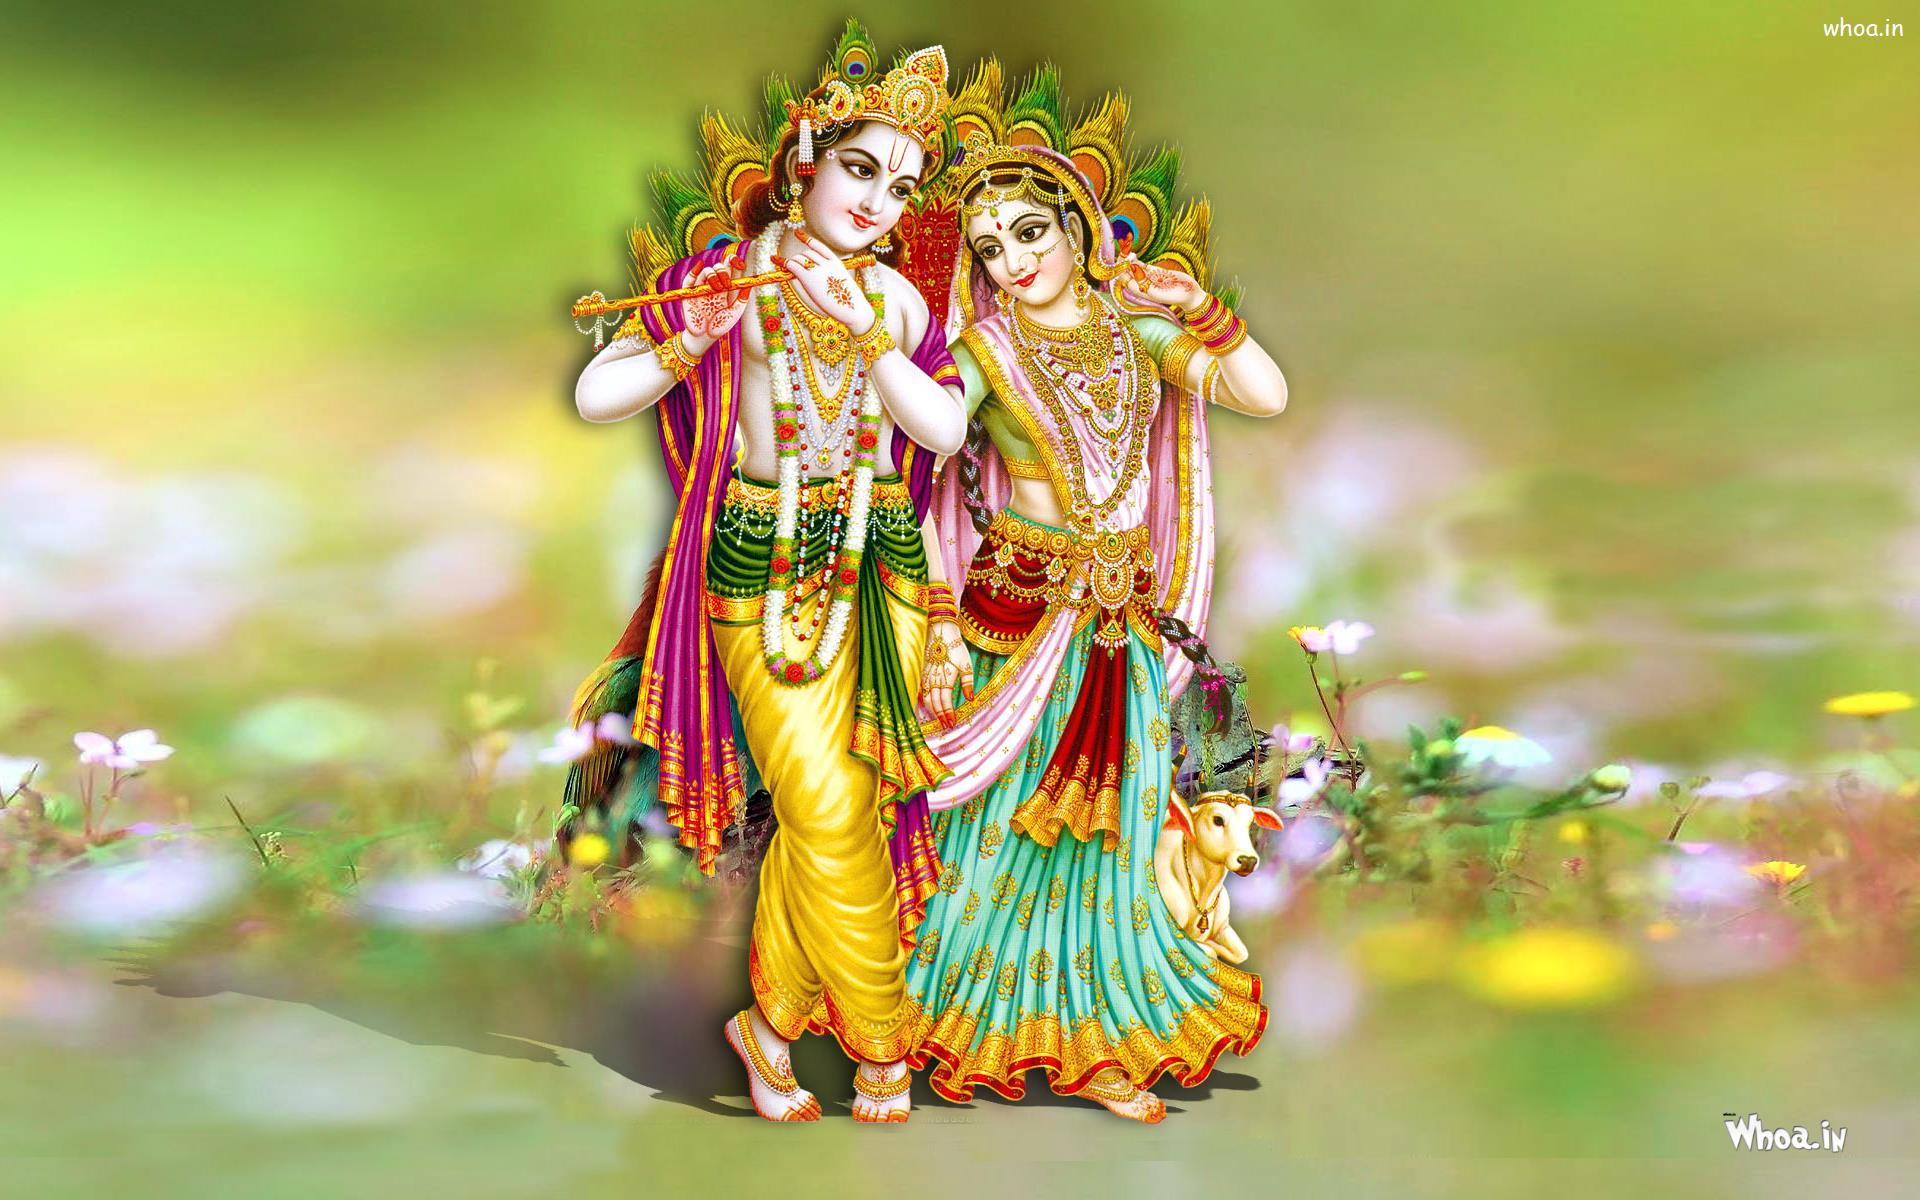 Radha krishna serial music free download | Free Download